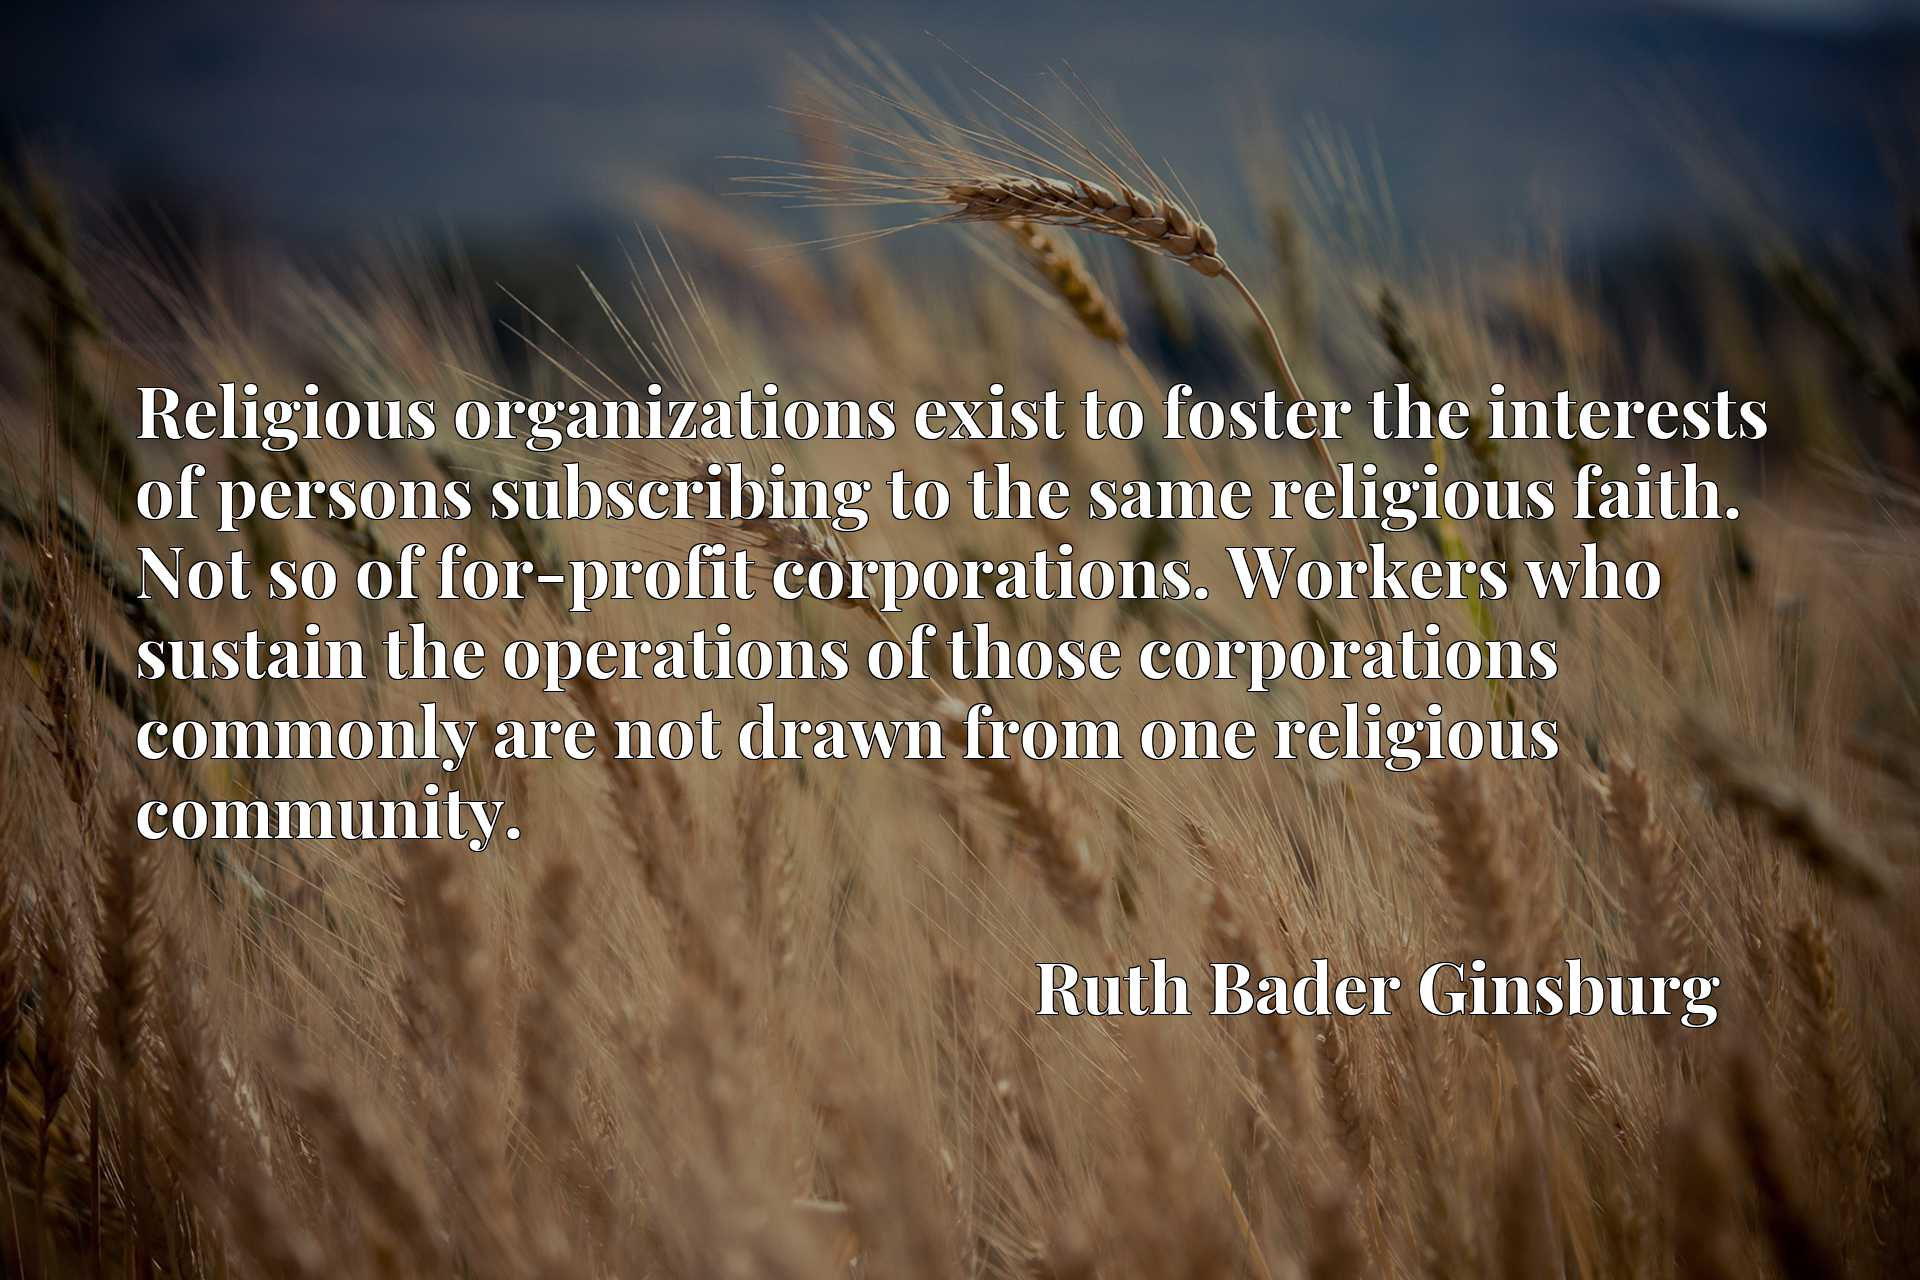 Religious organizations exist to foster the interests of persons subscribing to the same religious faith. Not so of for-profit corporations. Workers who sustain the operations of those corporations commonly are not drawn from one religious community.